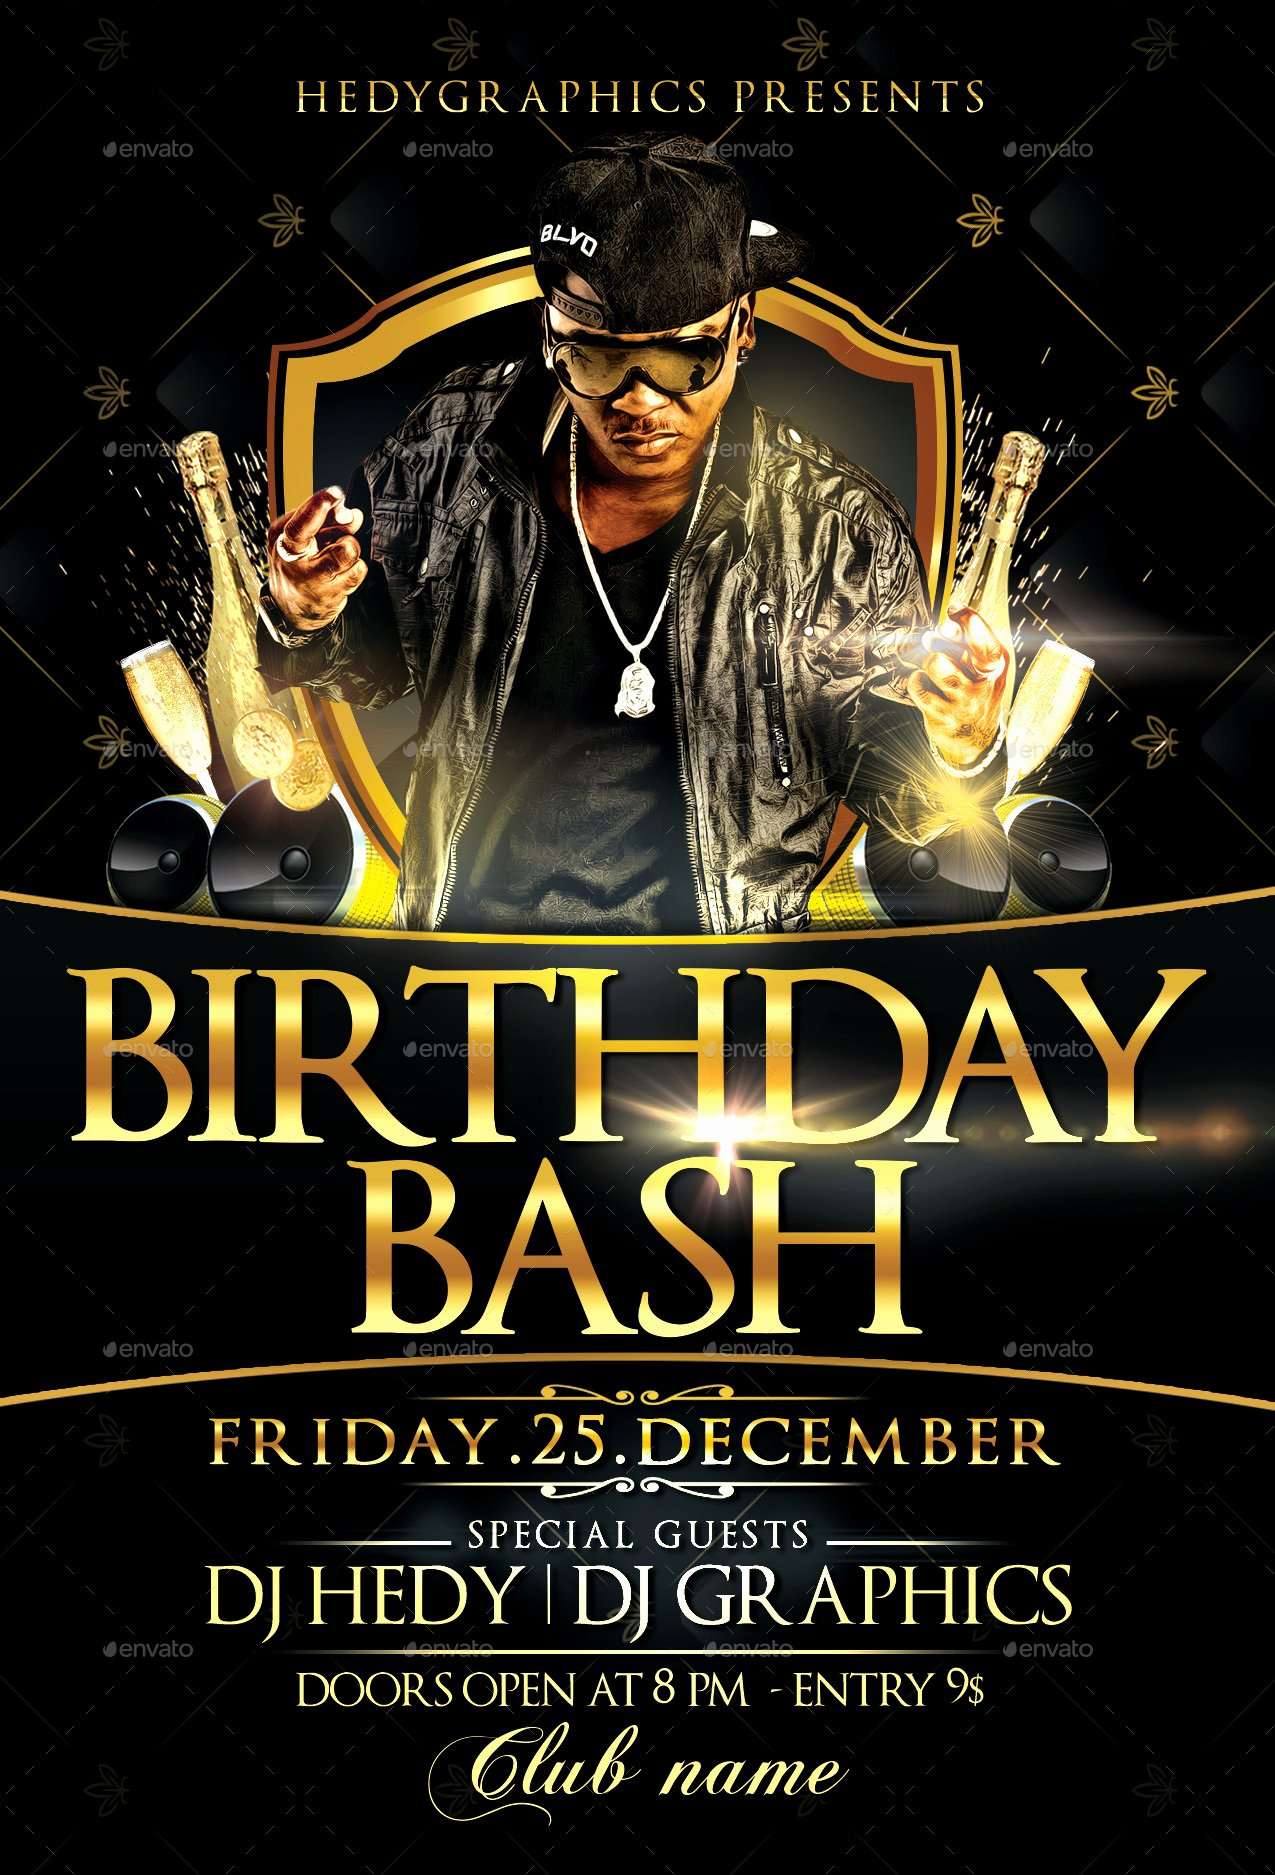 Birthday Flyer Template Free Best Of Birthday Bash Flyer Template by Hedygraphics